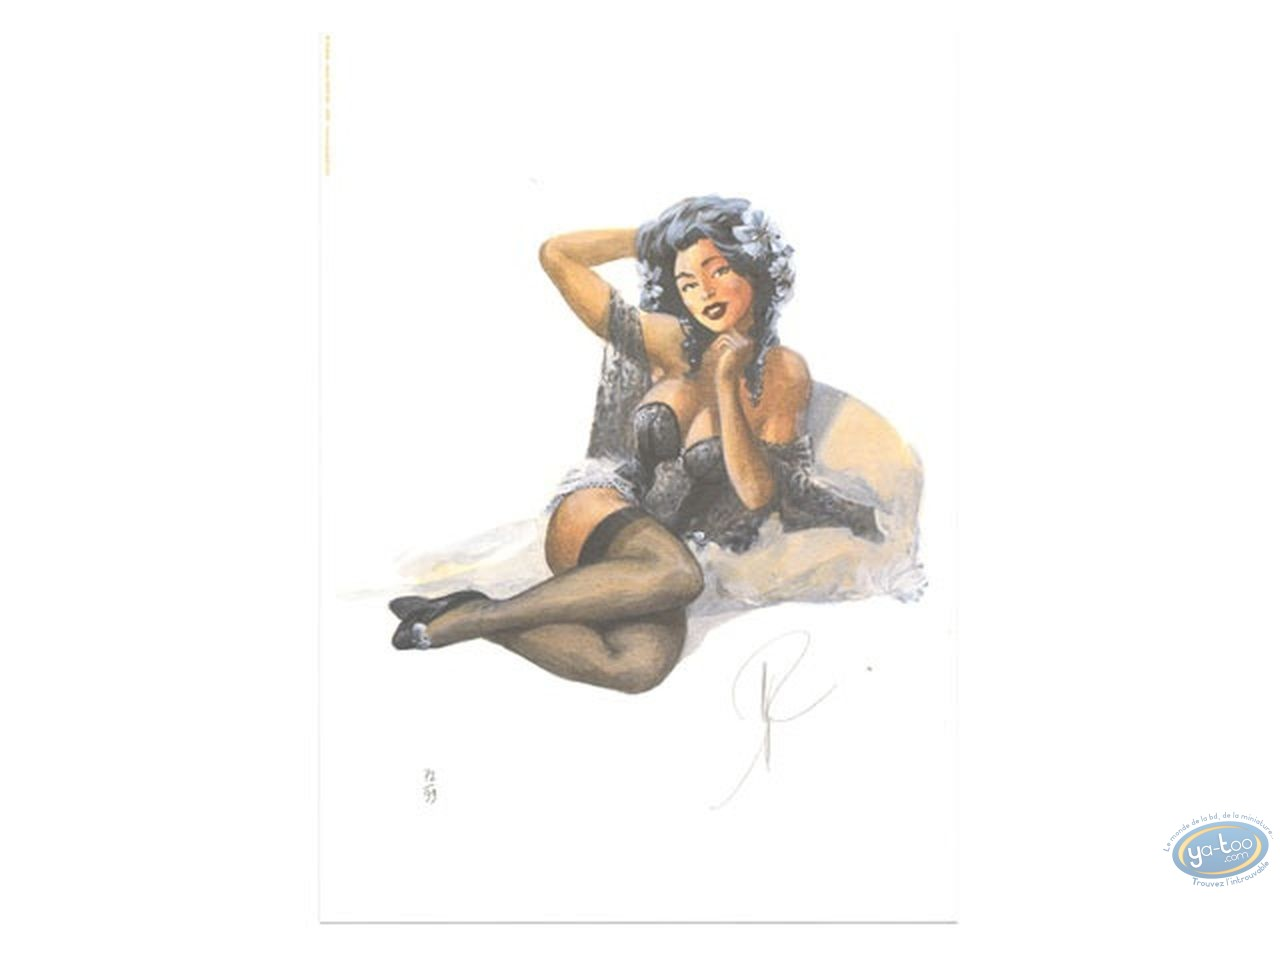 Bookplate Offset, Pin-Up : Pin-up sitting